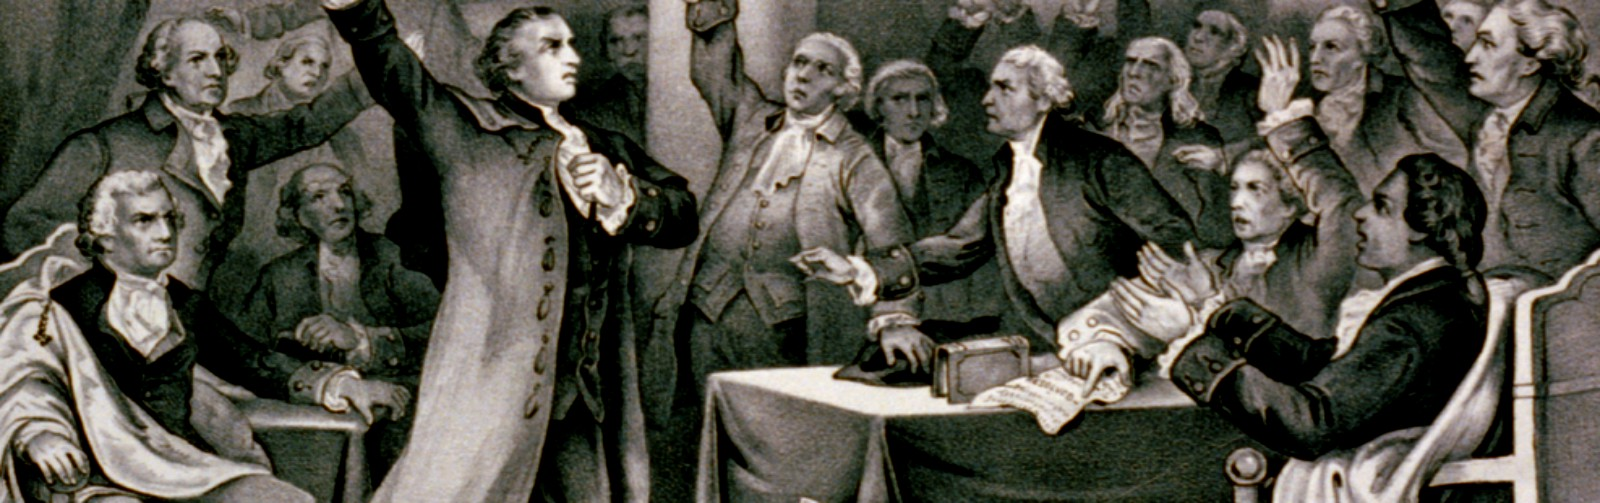 Thomas Jefferson and Alexander Hamilton: Conflict and the Constitution